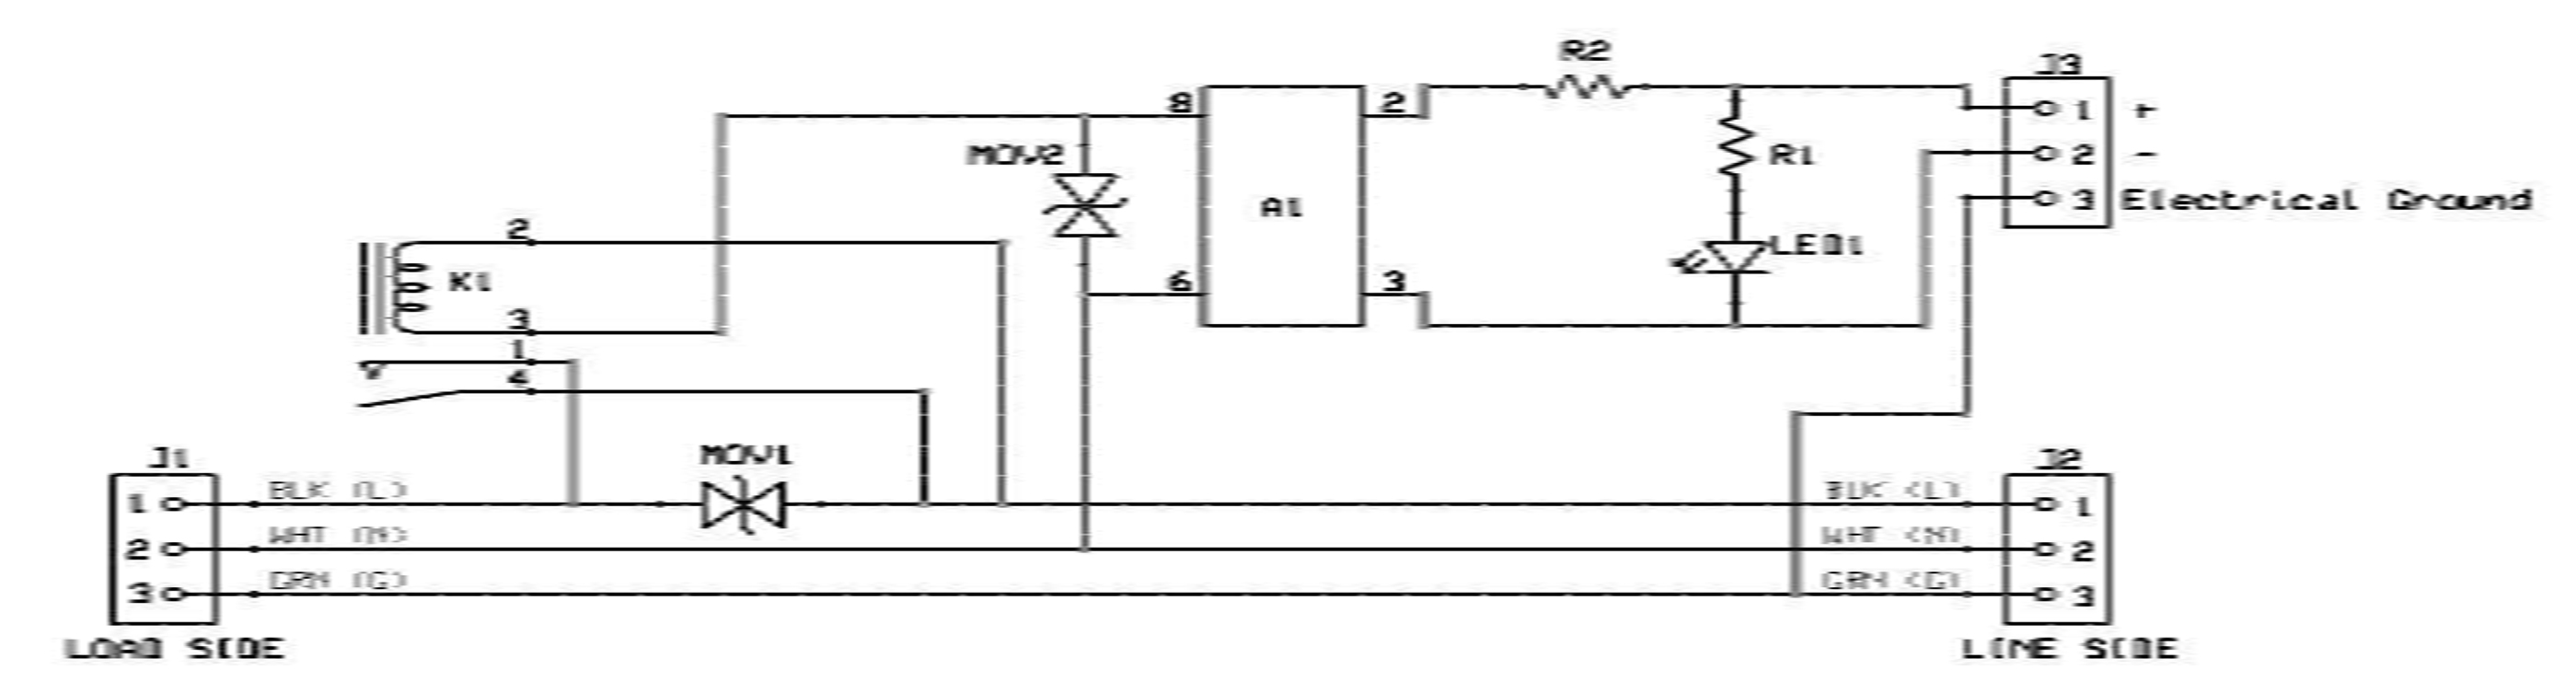 Drivers Relays And Solid State Mbed Snubber Circuit Triac Power Switch Tail Ii Schematic